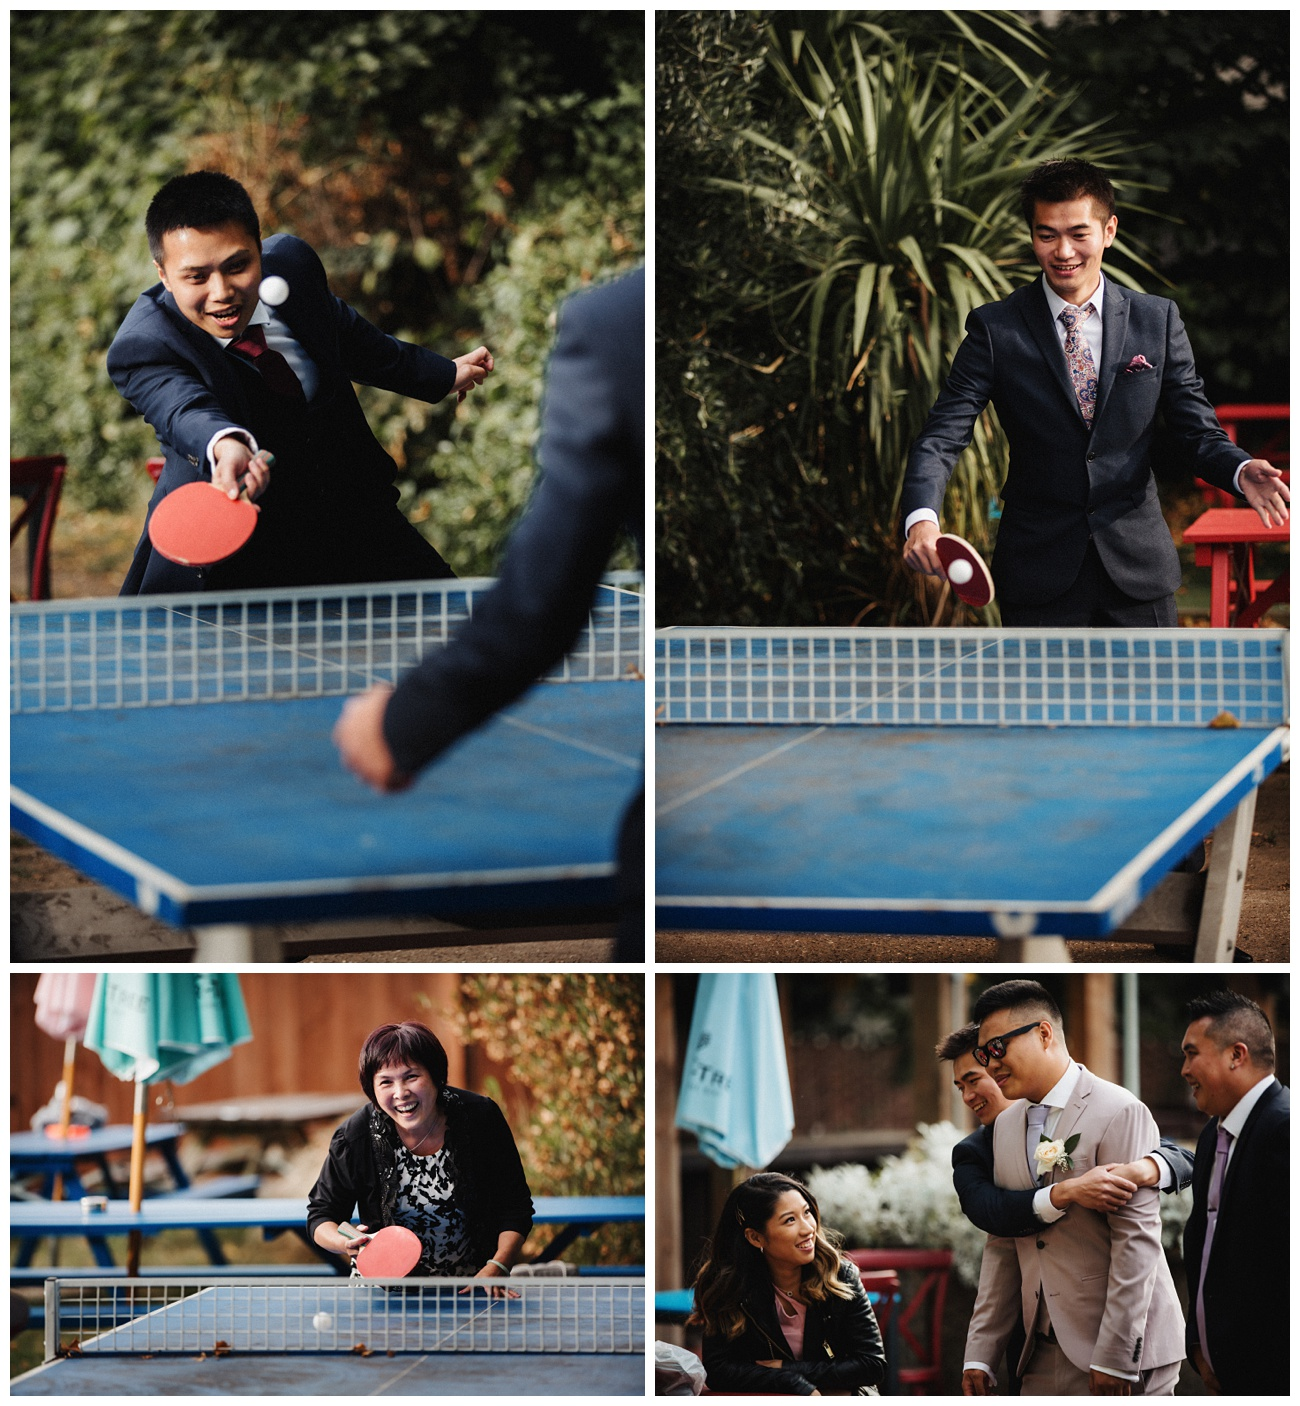 Wedding guests play table tennis outside in the gardens